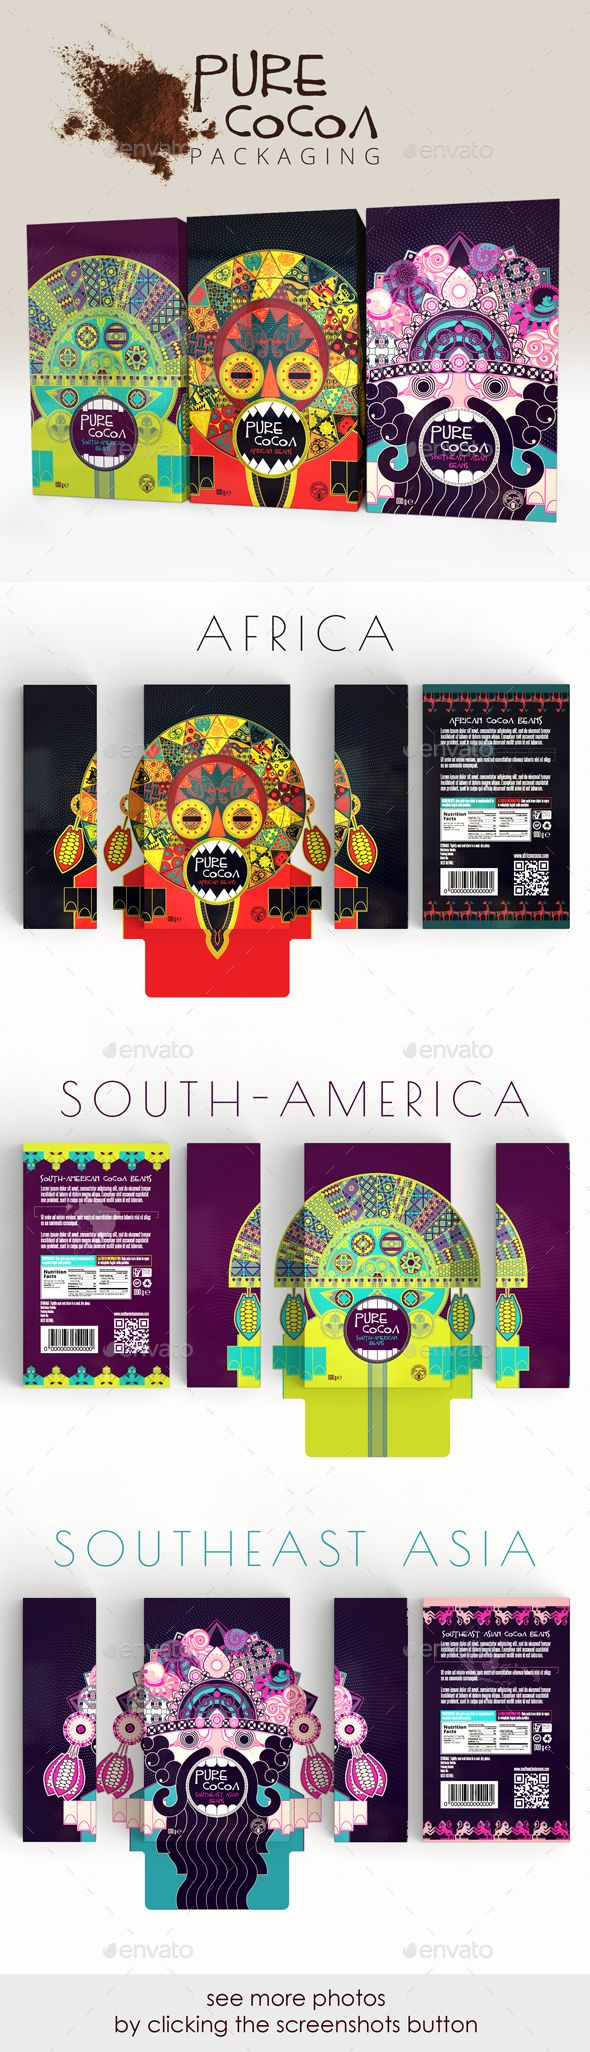 These designs are an homage to the traditional cultures of the main producing countries of cocoa beans. Elements of traditional clothing patterns, wood carvings, architectural signs & symbols were blended together and transposed into ritual, ceremonial or performance-art masks.  https://graphicriver.net/item/pure-cocoa-packaging/16194608